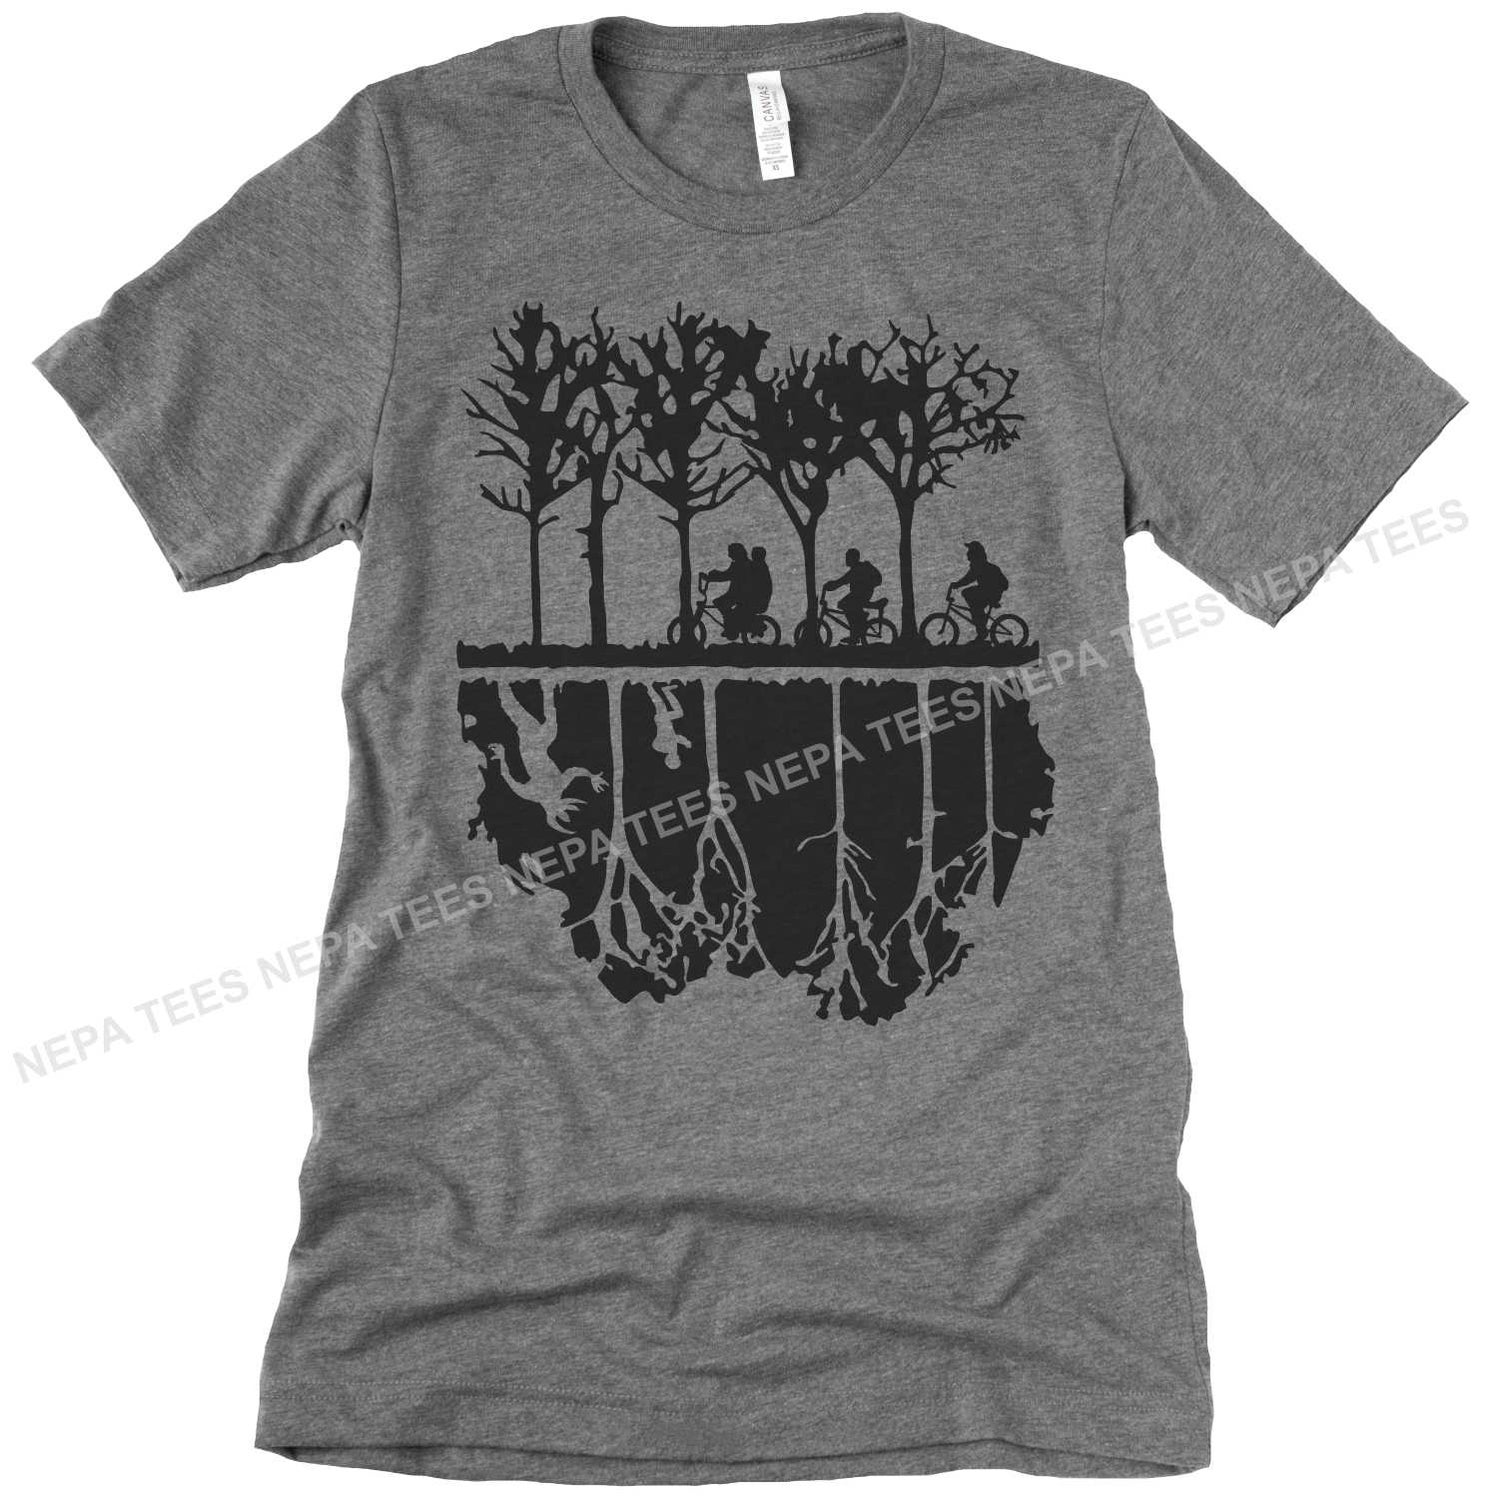 Image of The Upside Down T-shirt